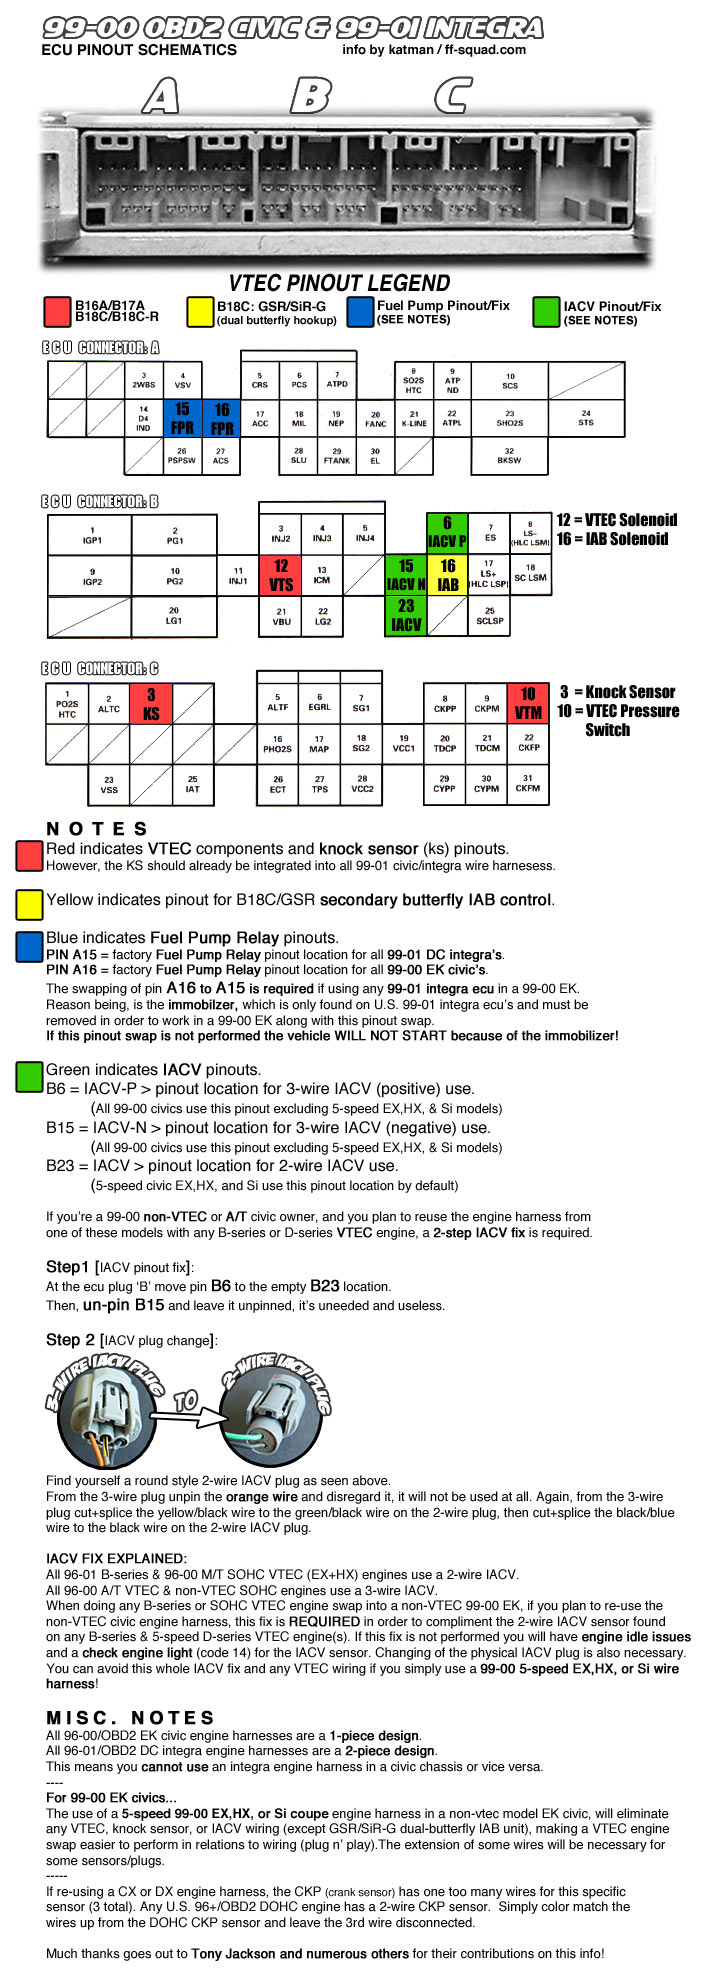 Obd2a To Obd2b Distributor Wiring Diagram - DIY Enthusiasts Wiring ...